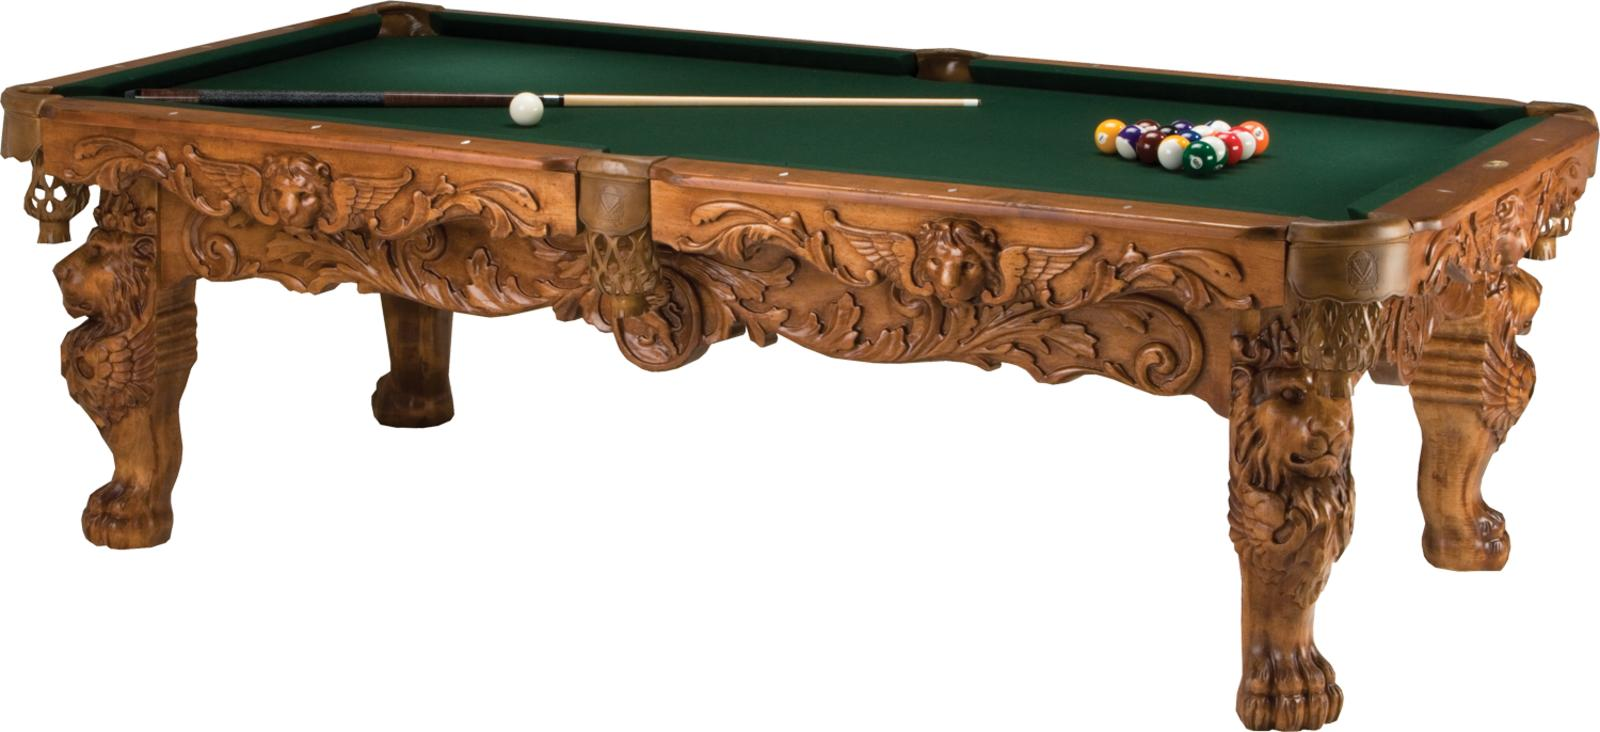 Outstanding Pool Table 1600 x 732 · 93 kB · jpeg